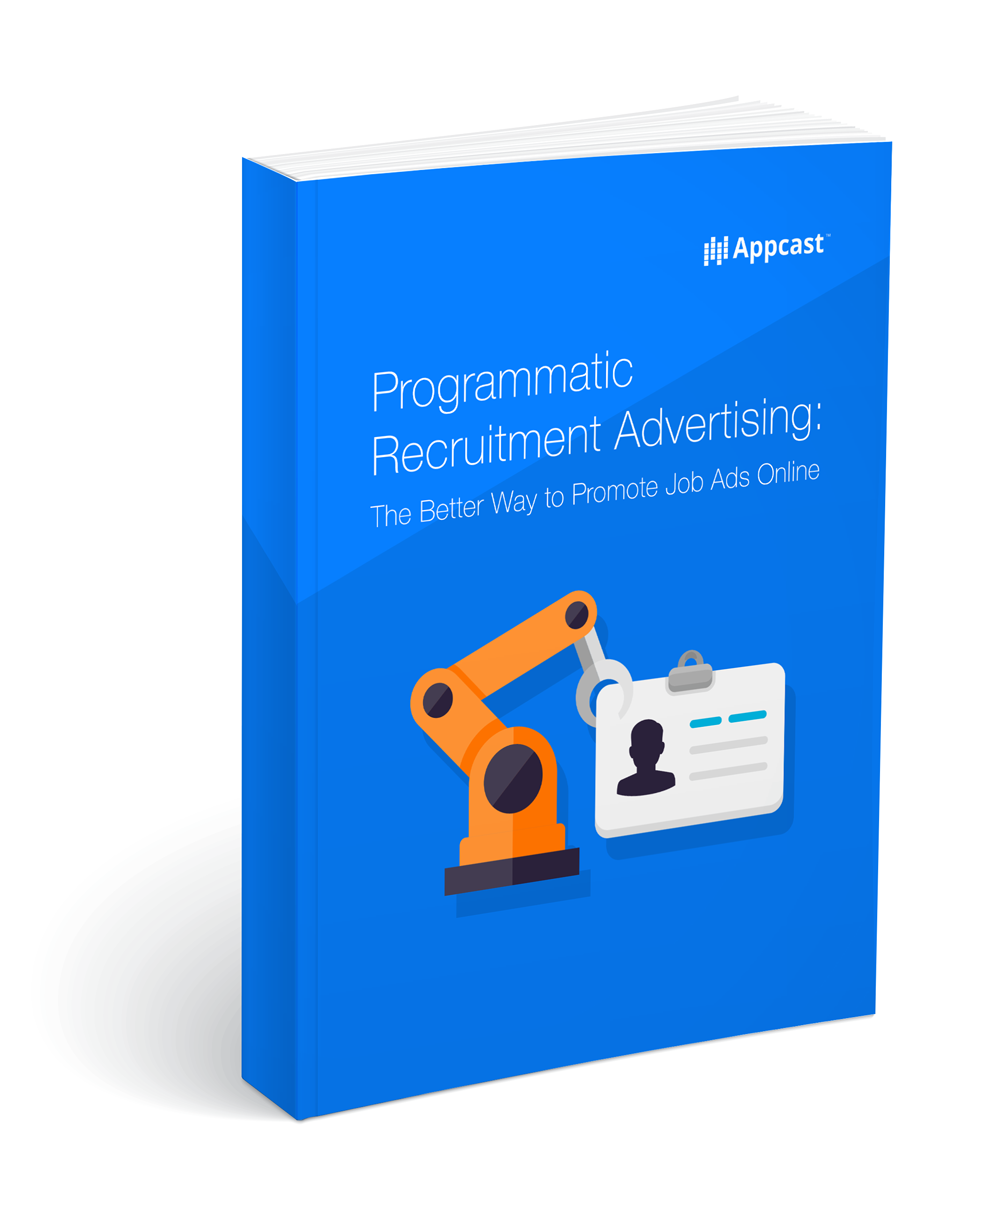 programmatic-recruitment-advertising